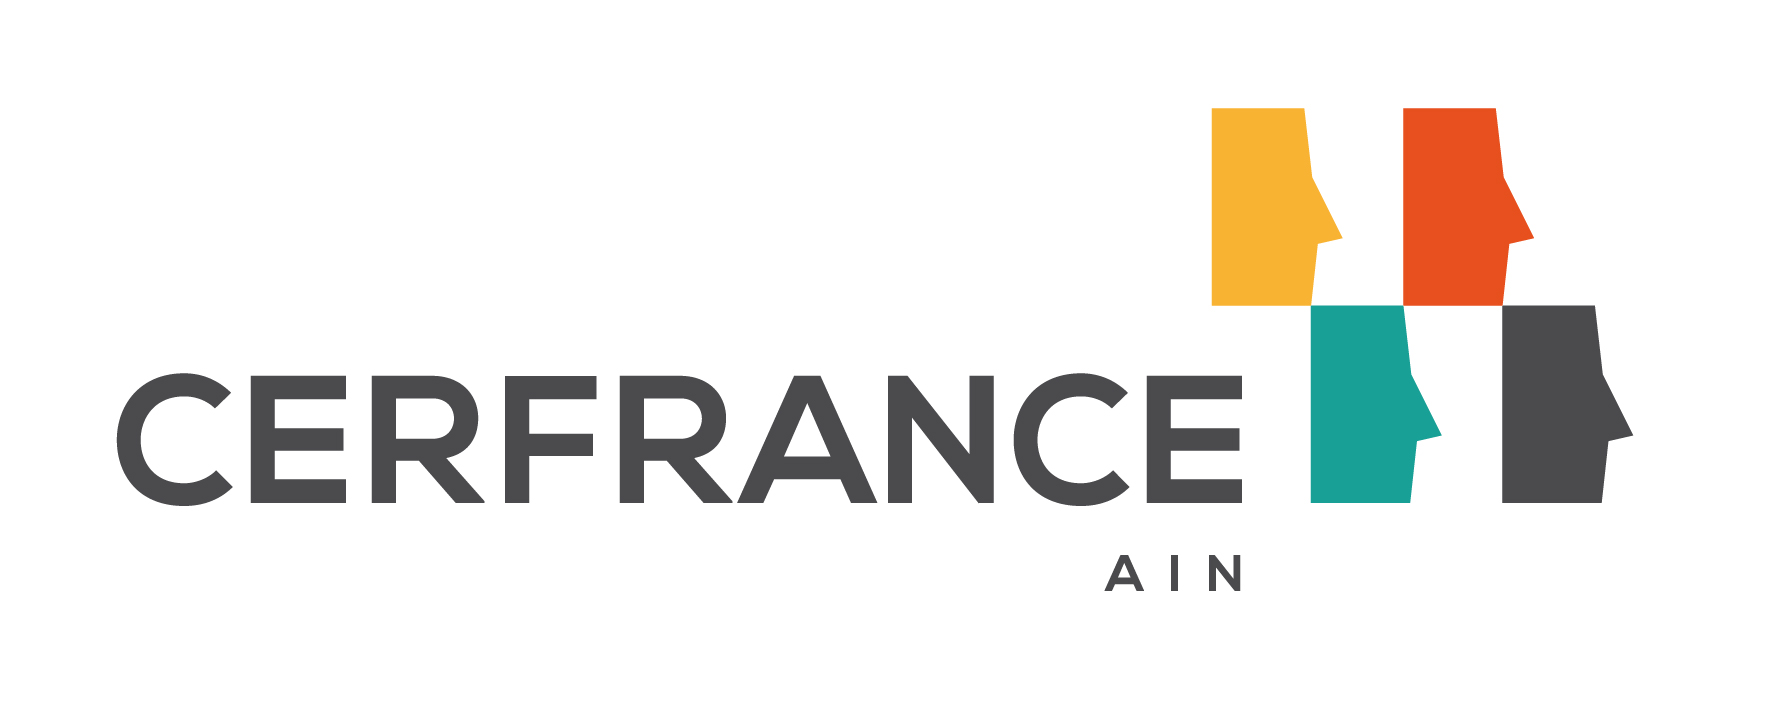 Agence Agence Meximieux - Expert Comptable cerfrance